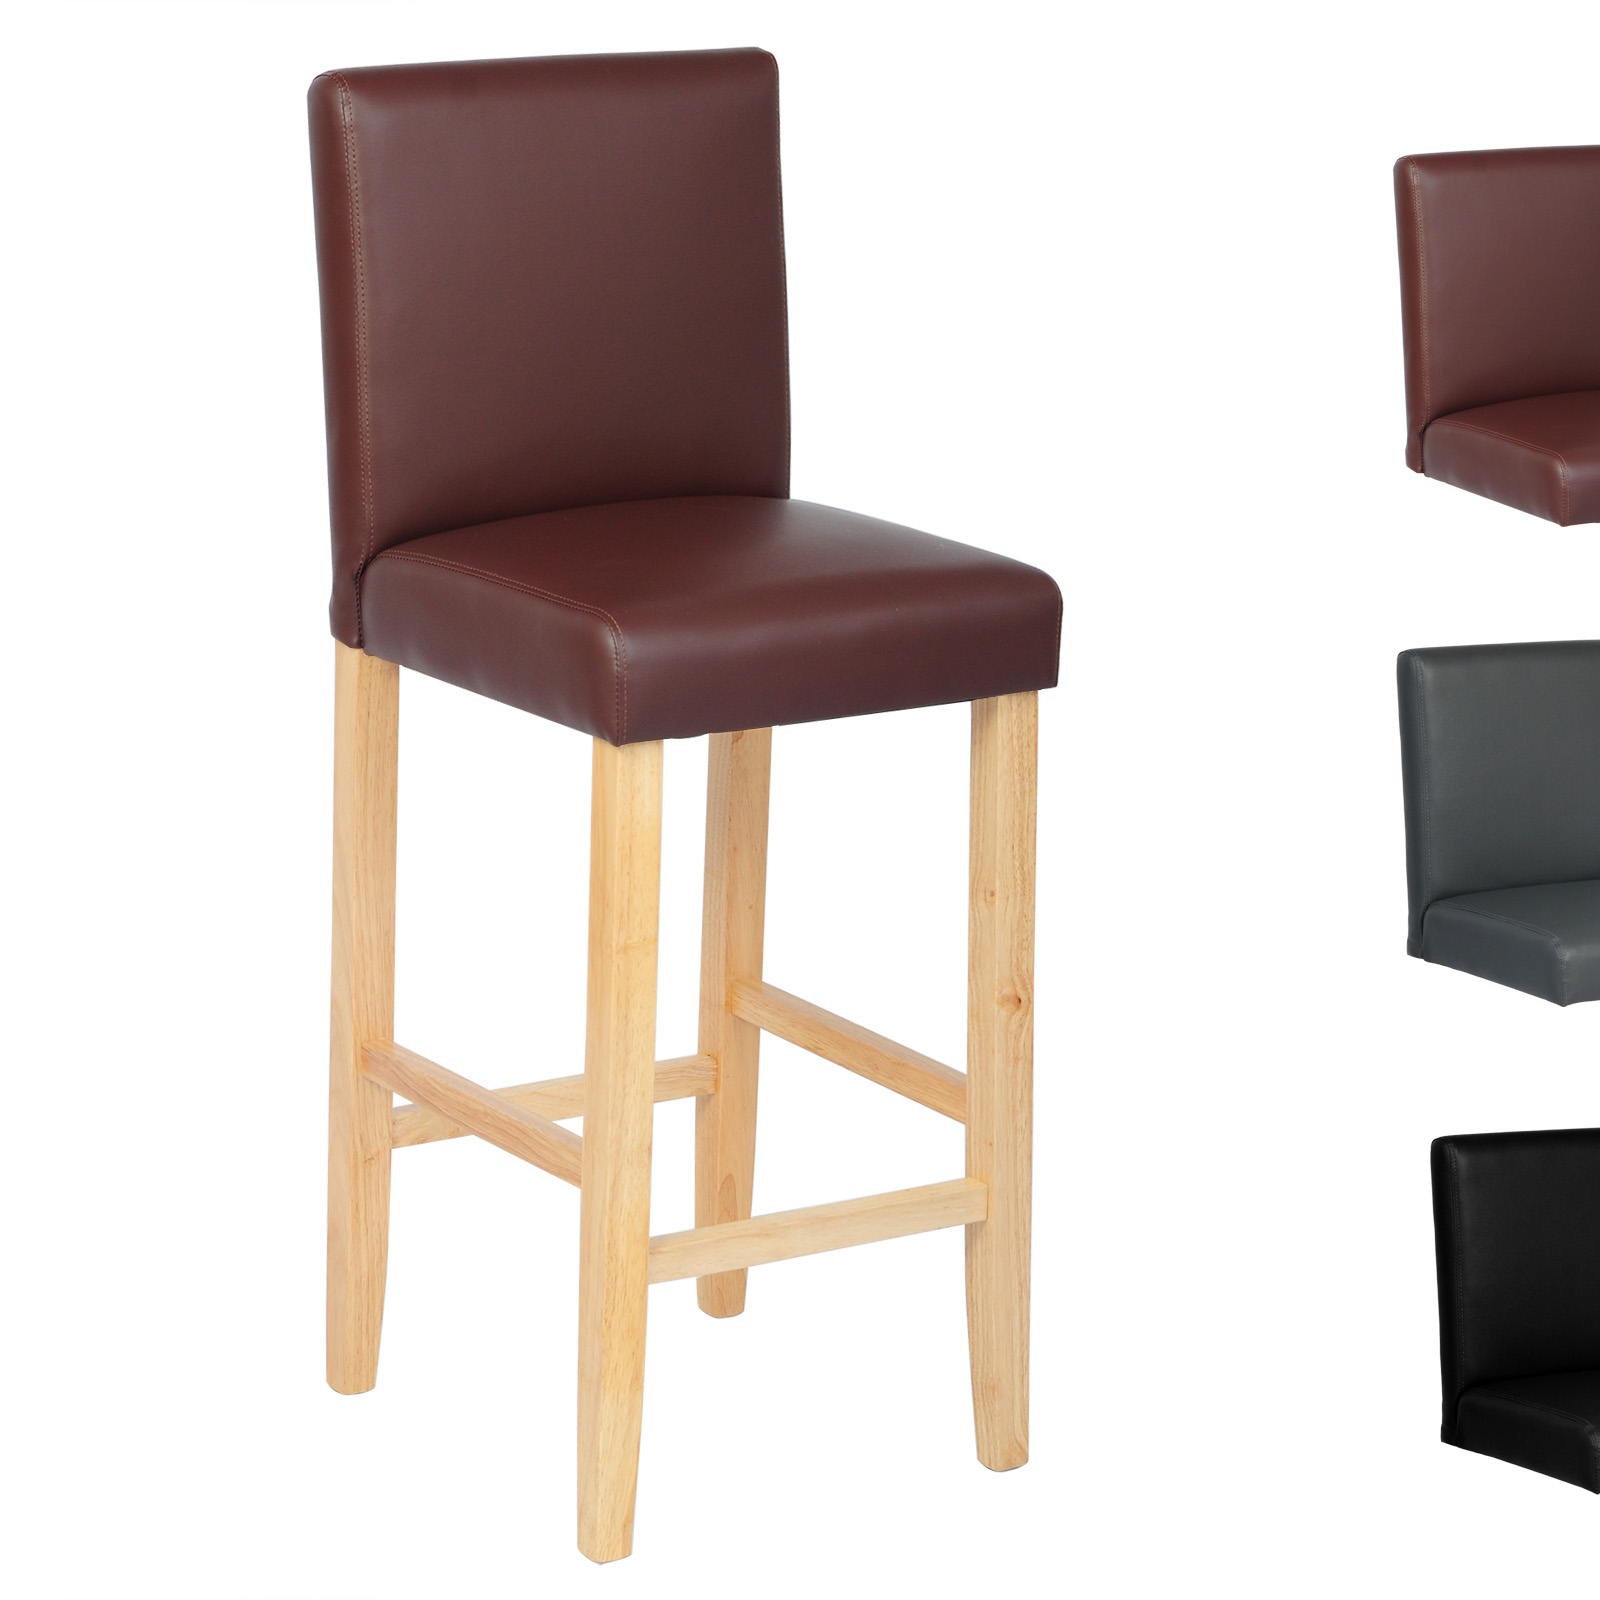 tabouret de bar avec dossier en cuir synth tique lin chaise de bar cuisine f023 ebay. Black Bedroom Furniture Sets. Home Design Ideas